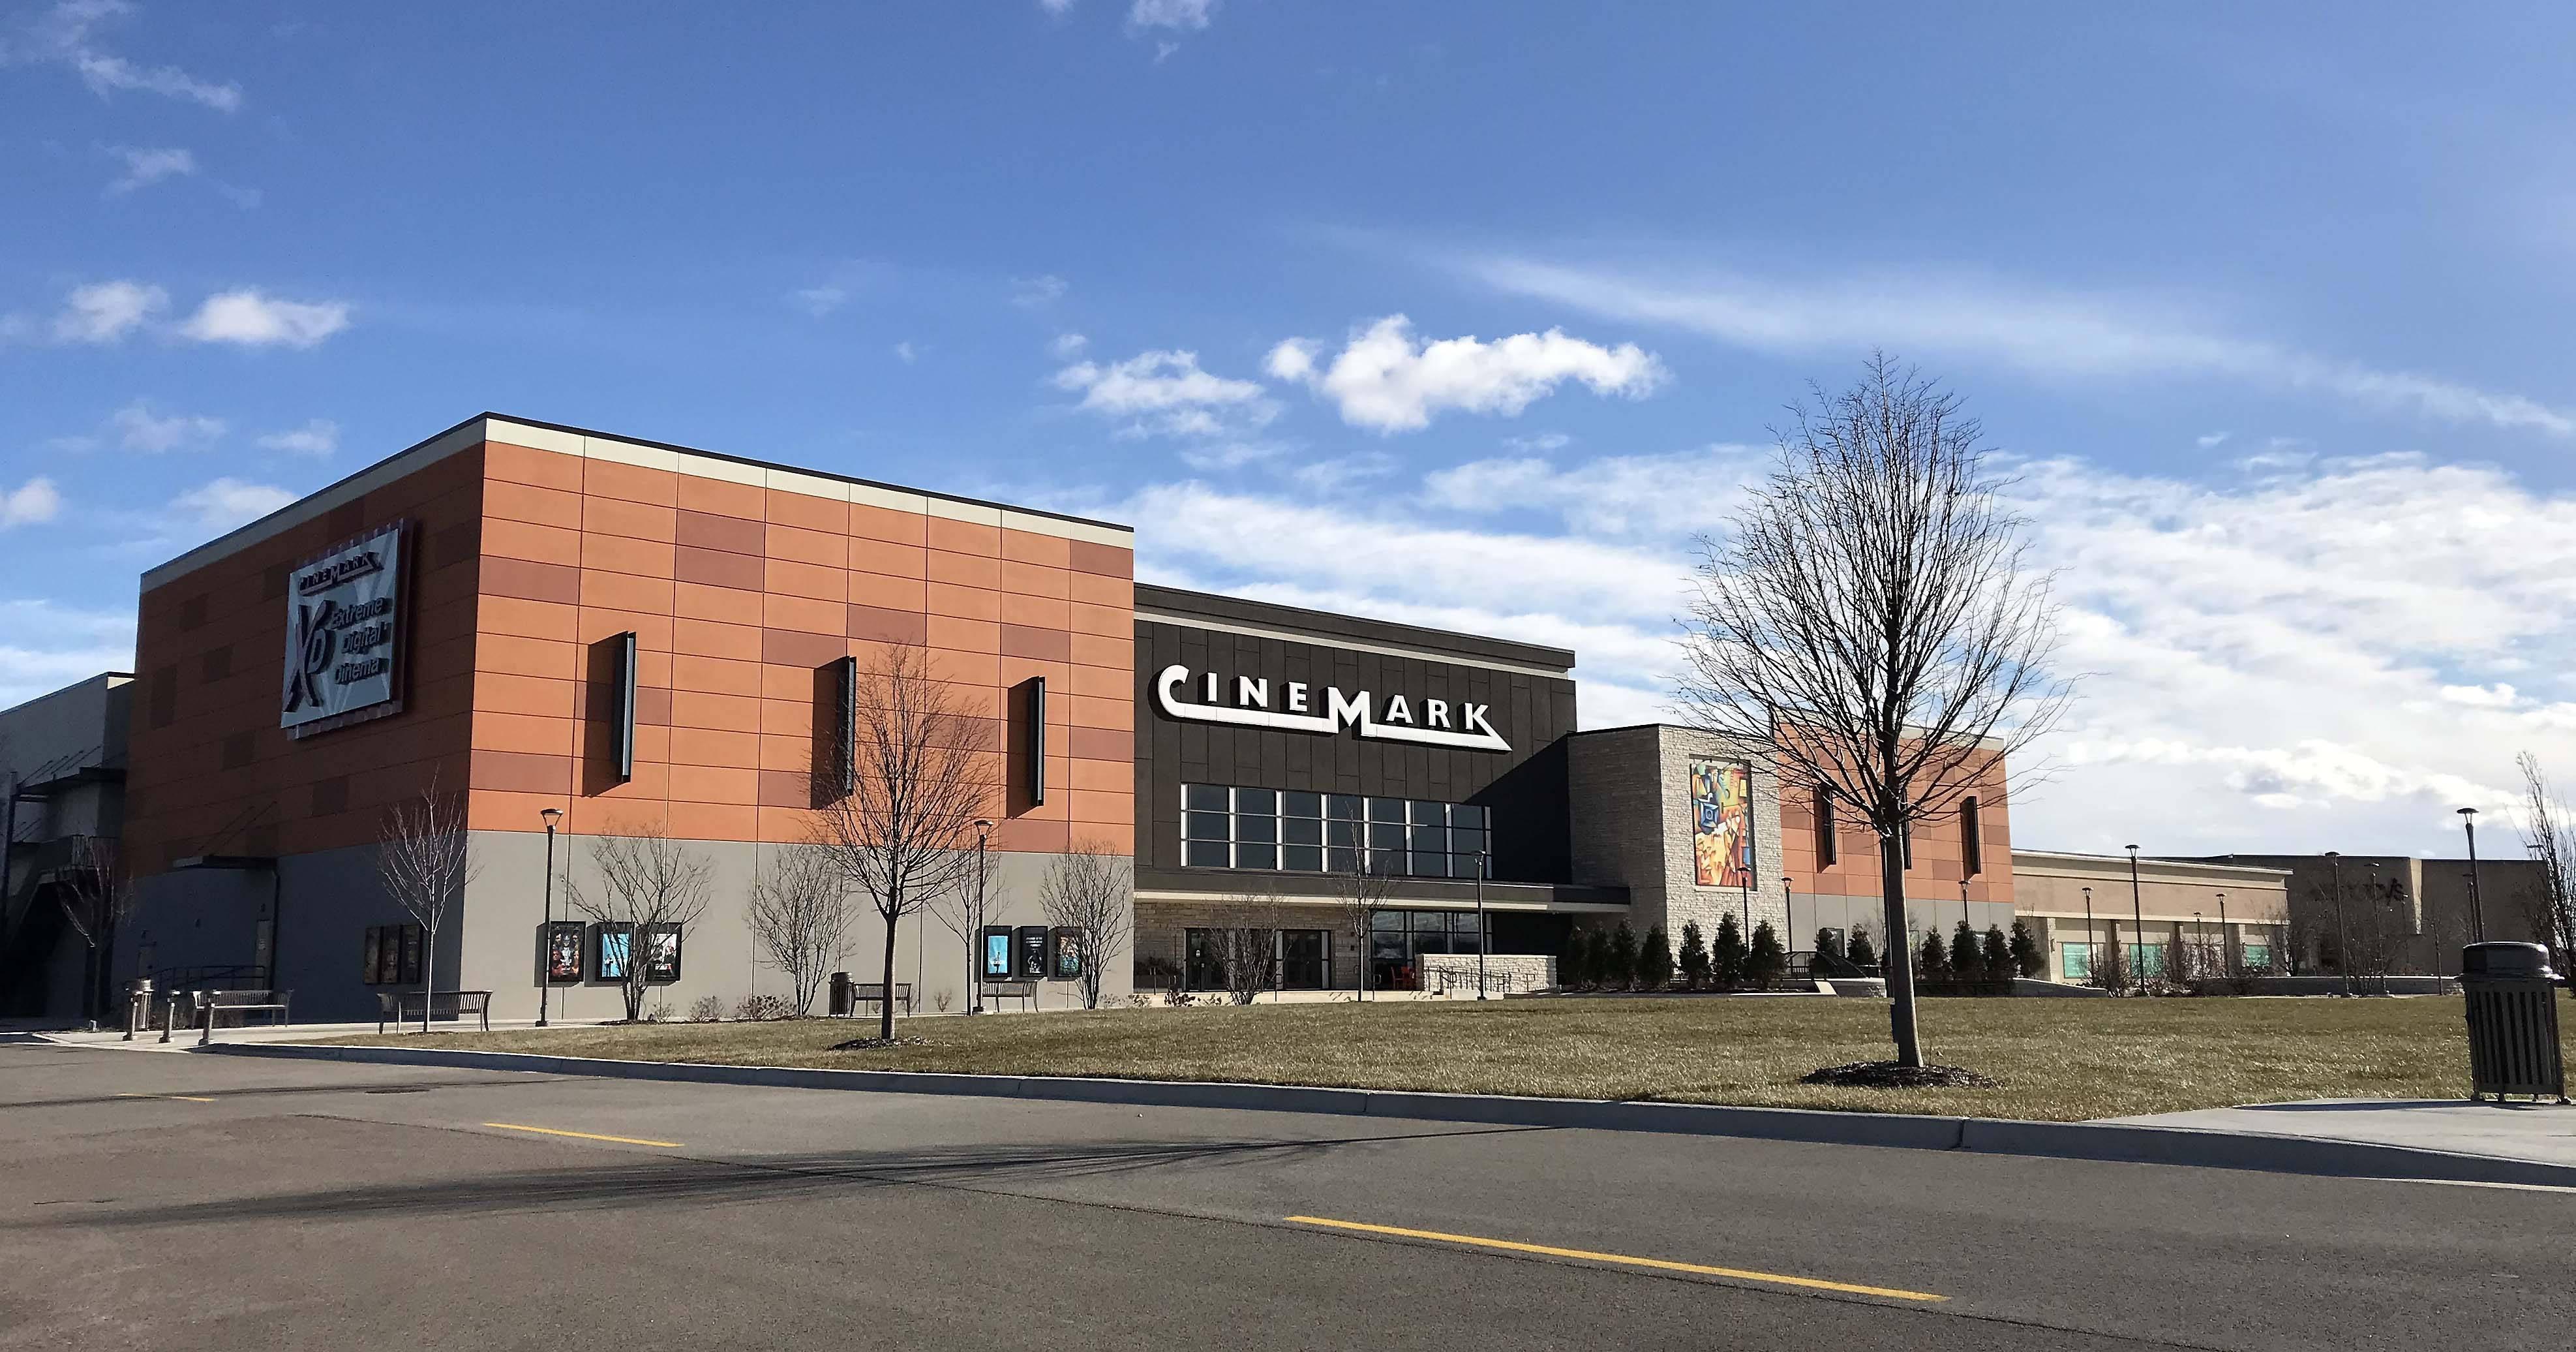 Spring Hill Mall owner Rouse Properties has invested about $40 million so far into the mall's redevelopment, which includes the addition of a Cinemark movie theater. The company is now partnering with West Dundee on planning for the project's next phases.